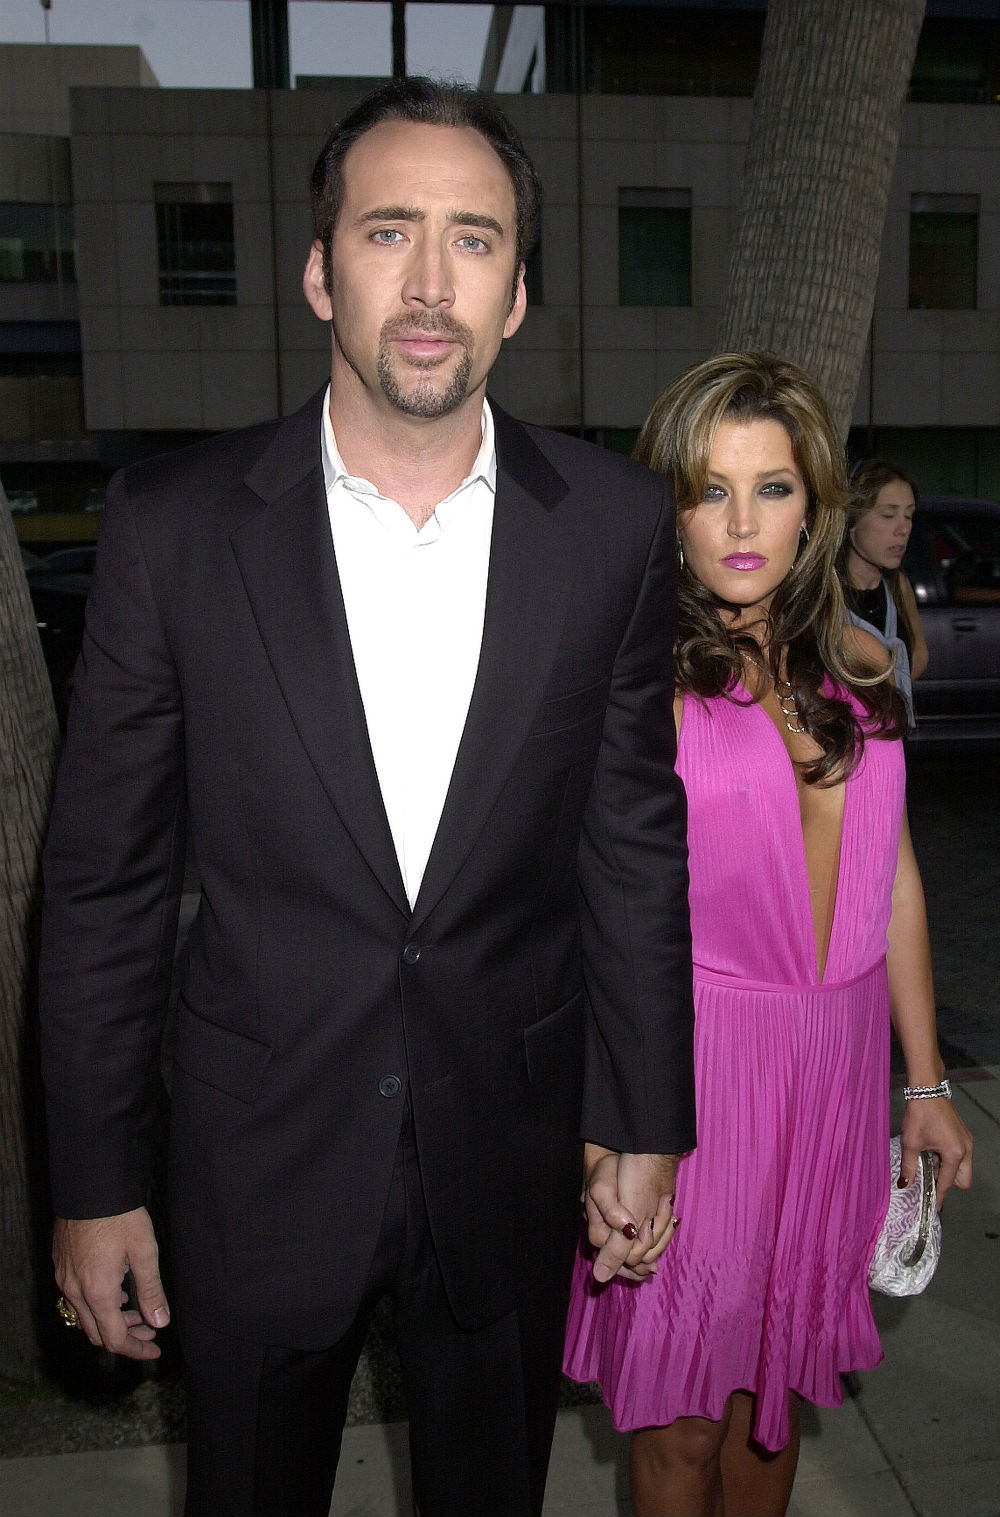 jaw-droppingly-short-celebrity-marriages-04